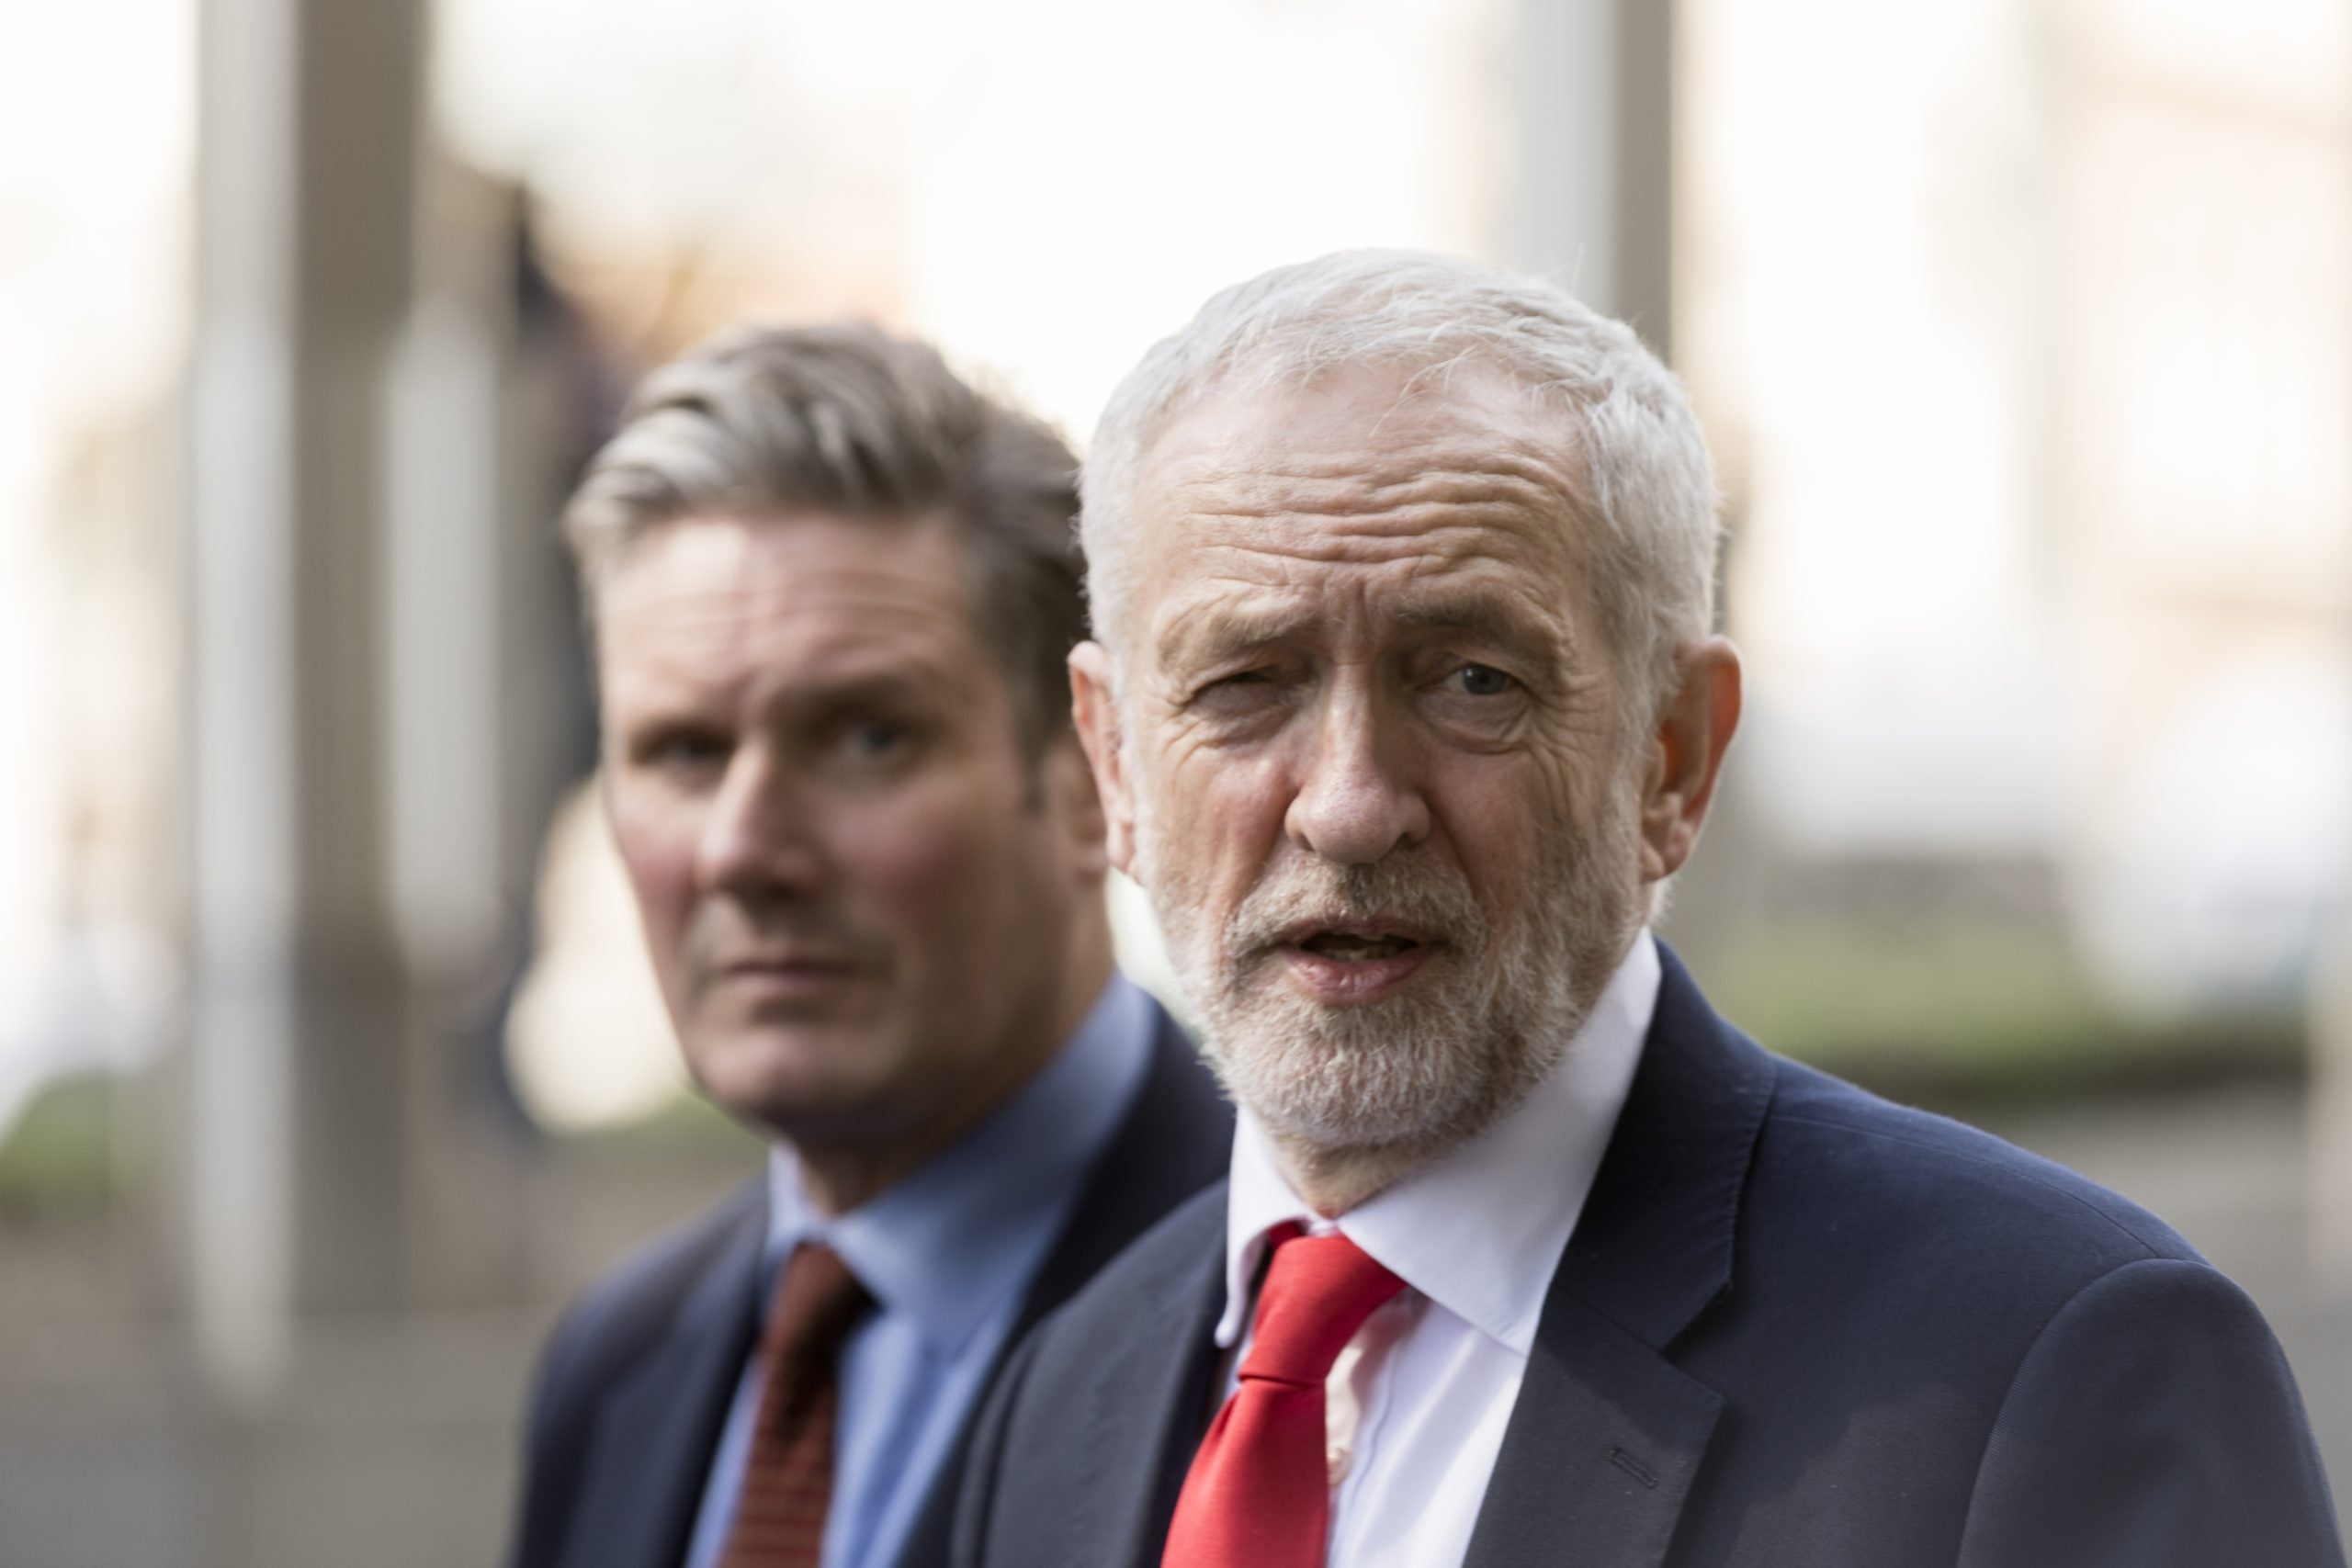 The only Brexit position that can win Labour an election is to remove Jeremy Corbyn